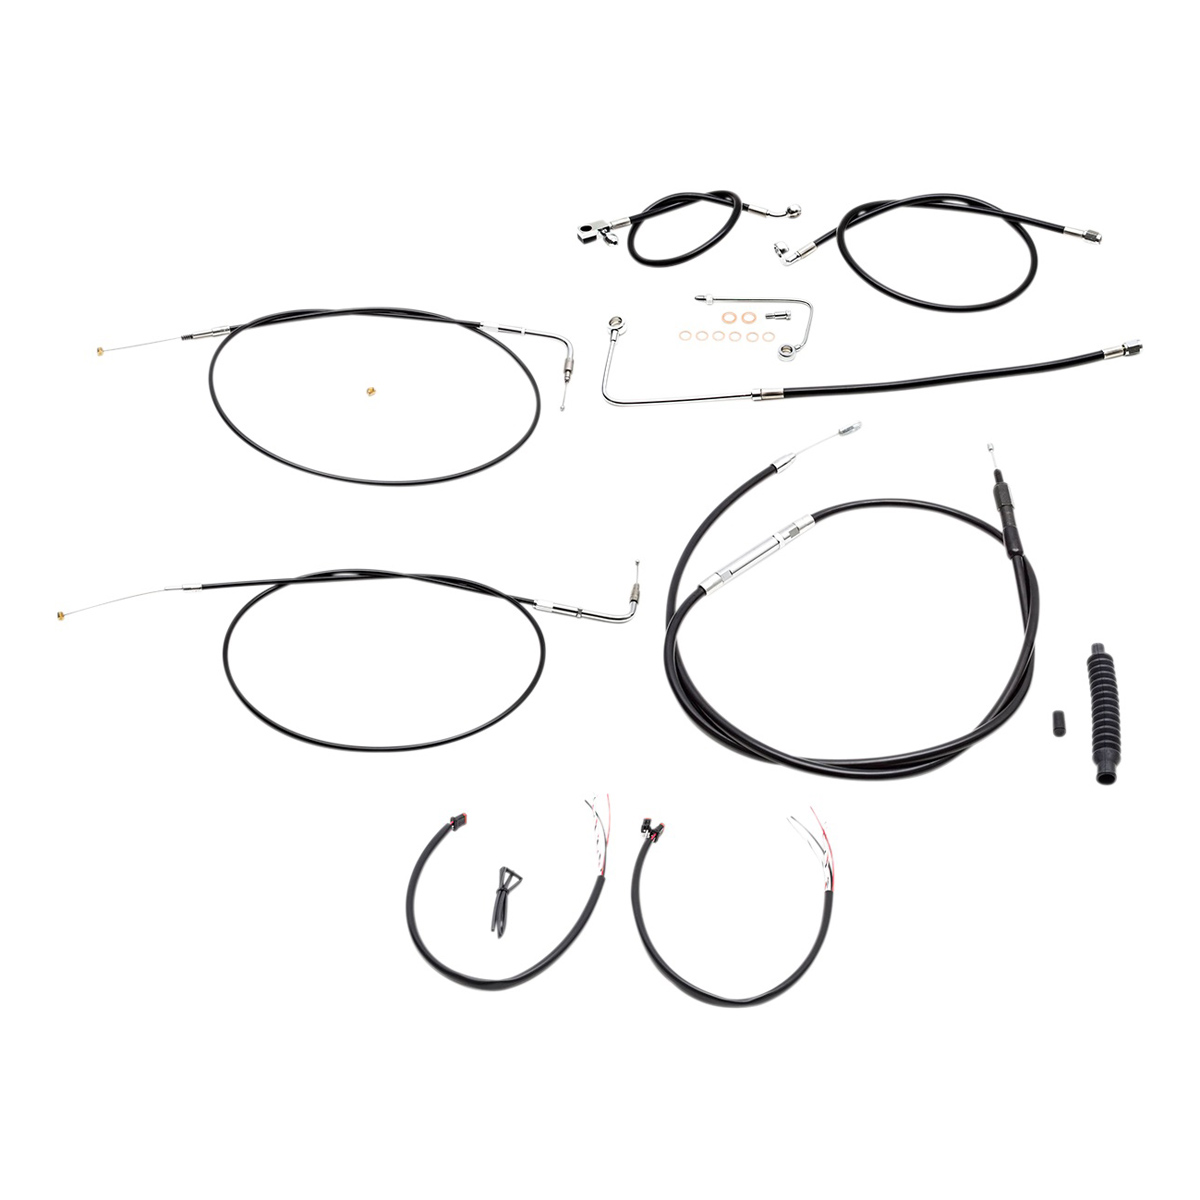 LA Choppers Black Complete Cable/Line/Wiring Handlebar Kit for 18″-20″ Bars on Models with ABS